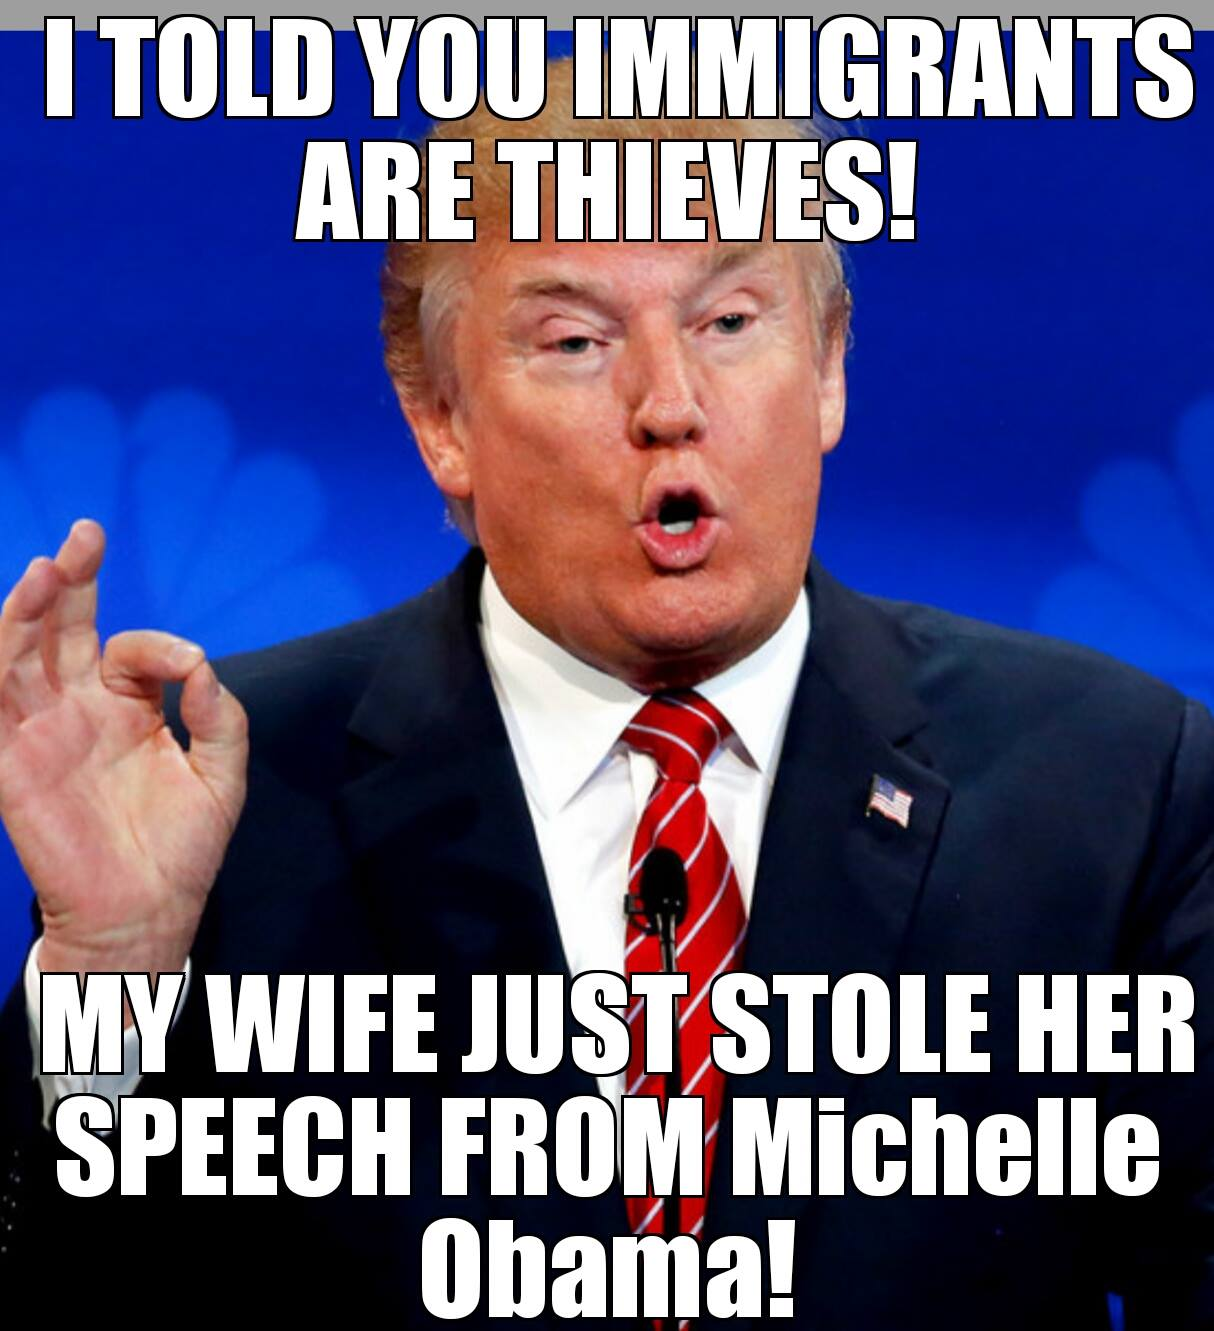 i told you immigrants are thieves, my wife just stoled her speech from michelle obama